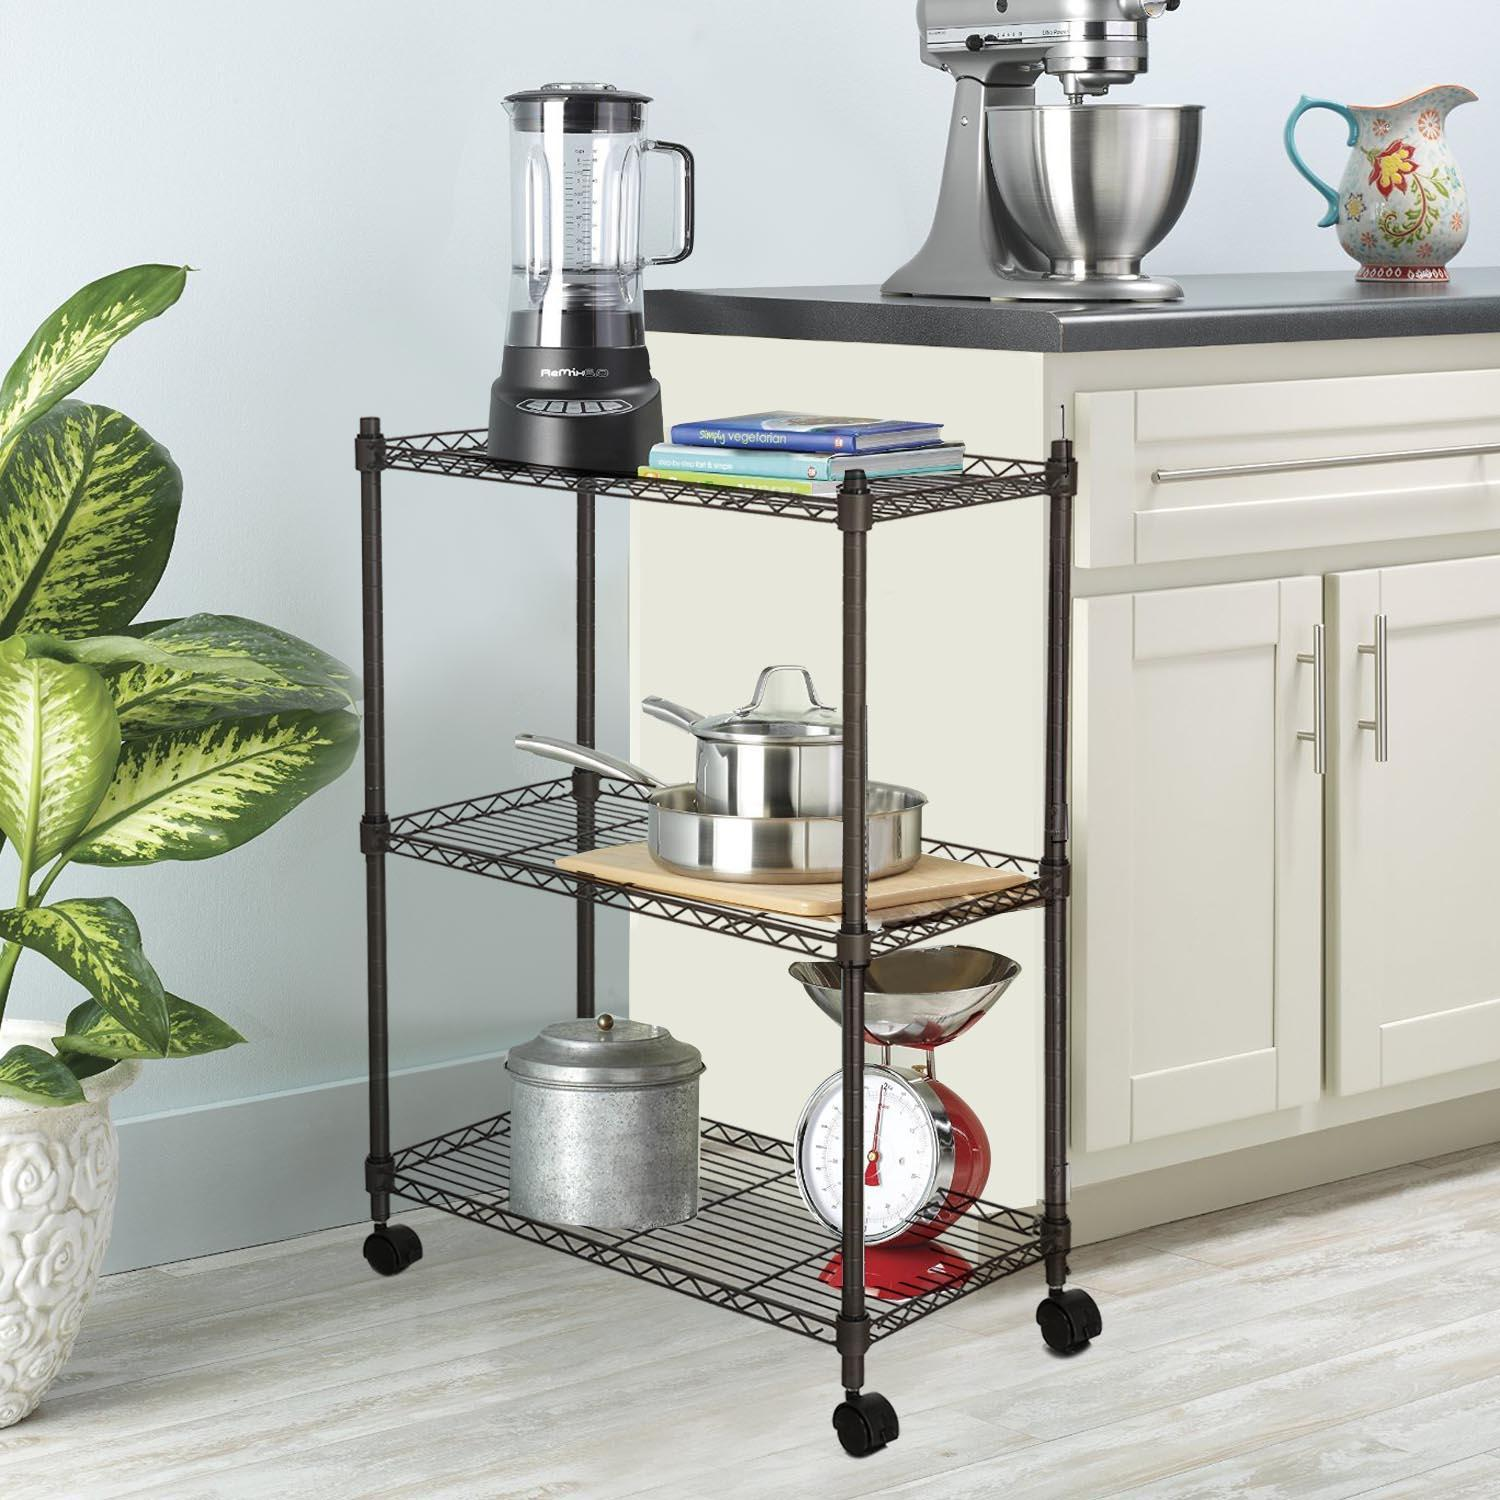 Hascon 3 Tier Metal Kitchen Rack Heavy Duty Microwave Oven Stand Storage  Cart Black Wire